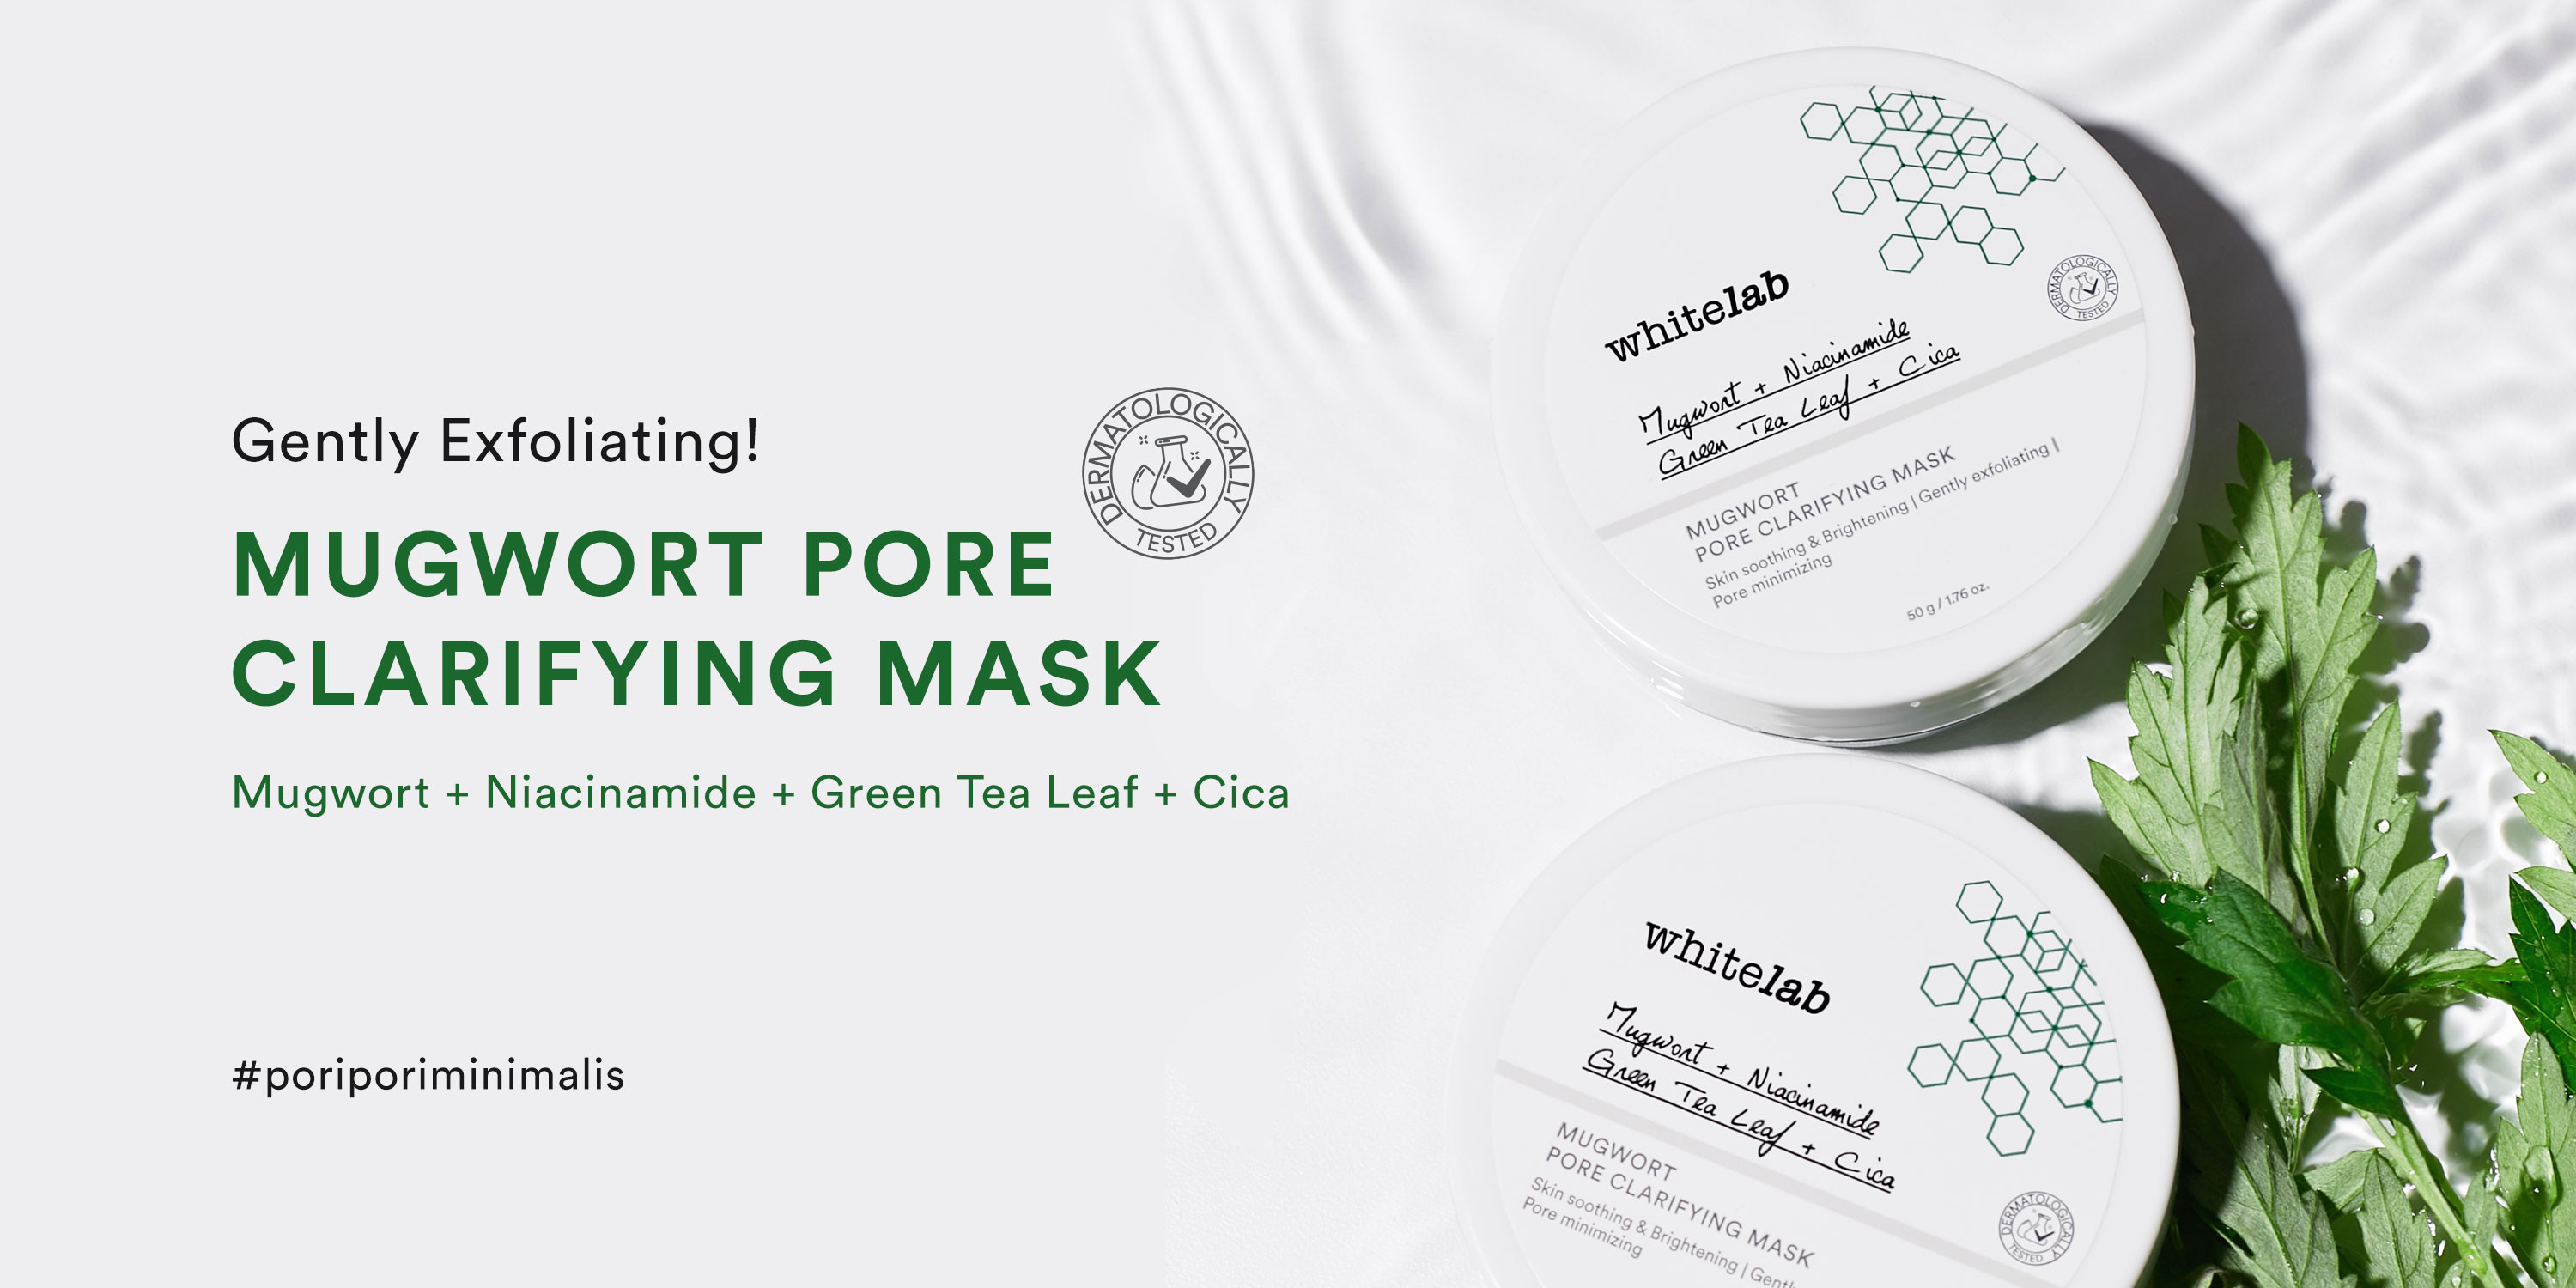 Mugwort Pore Clarifying Mask